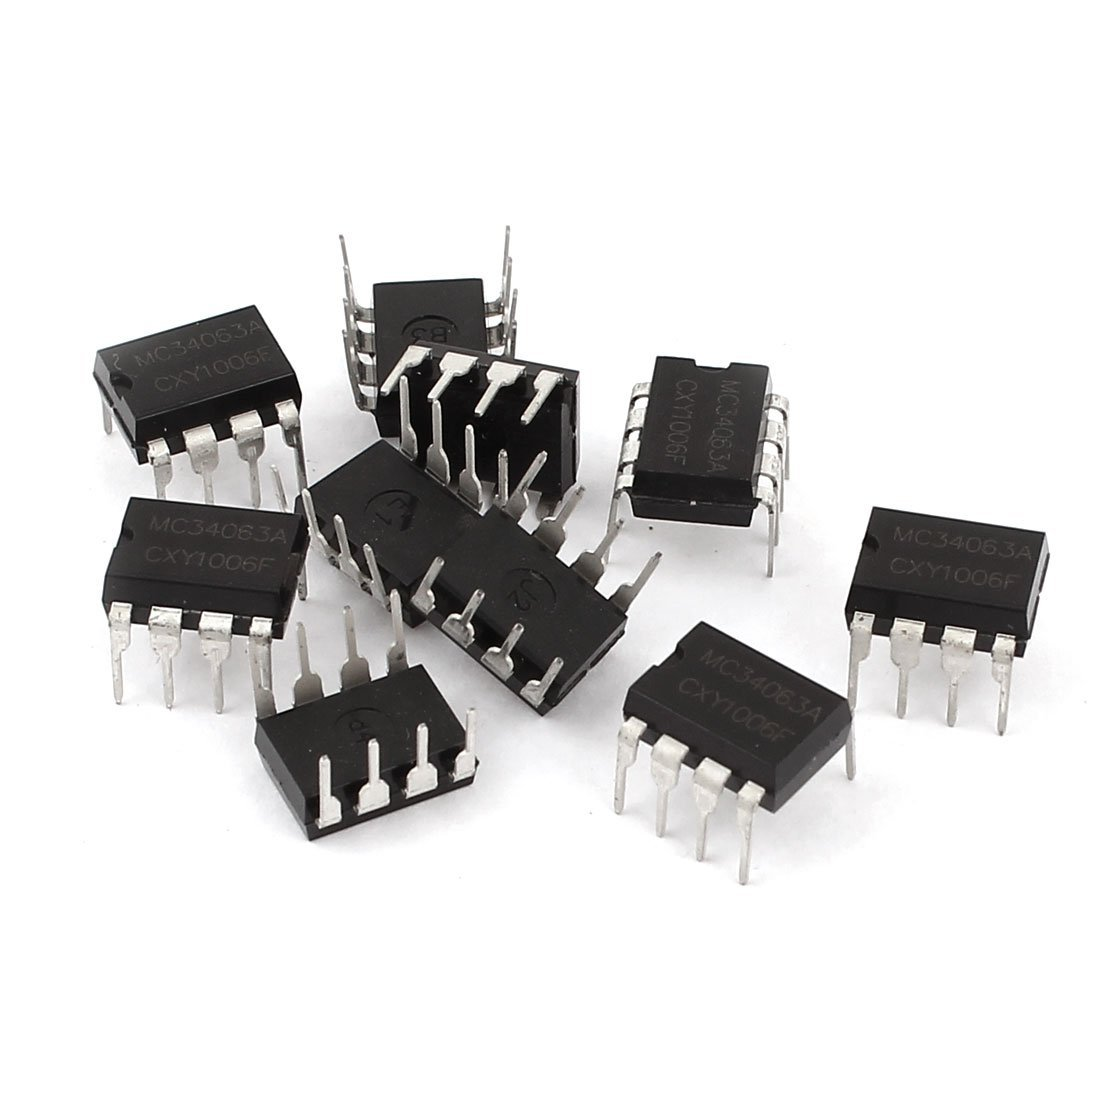 10 Pcs Mc34063a Dip 8 Dc Voltage Converter Control Circuits Ic The Stepup 15a Business Industry Science